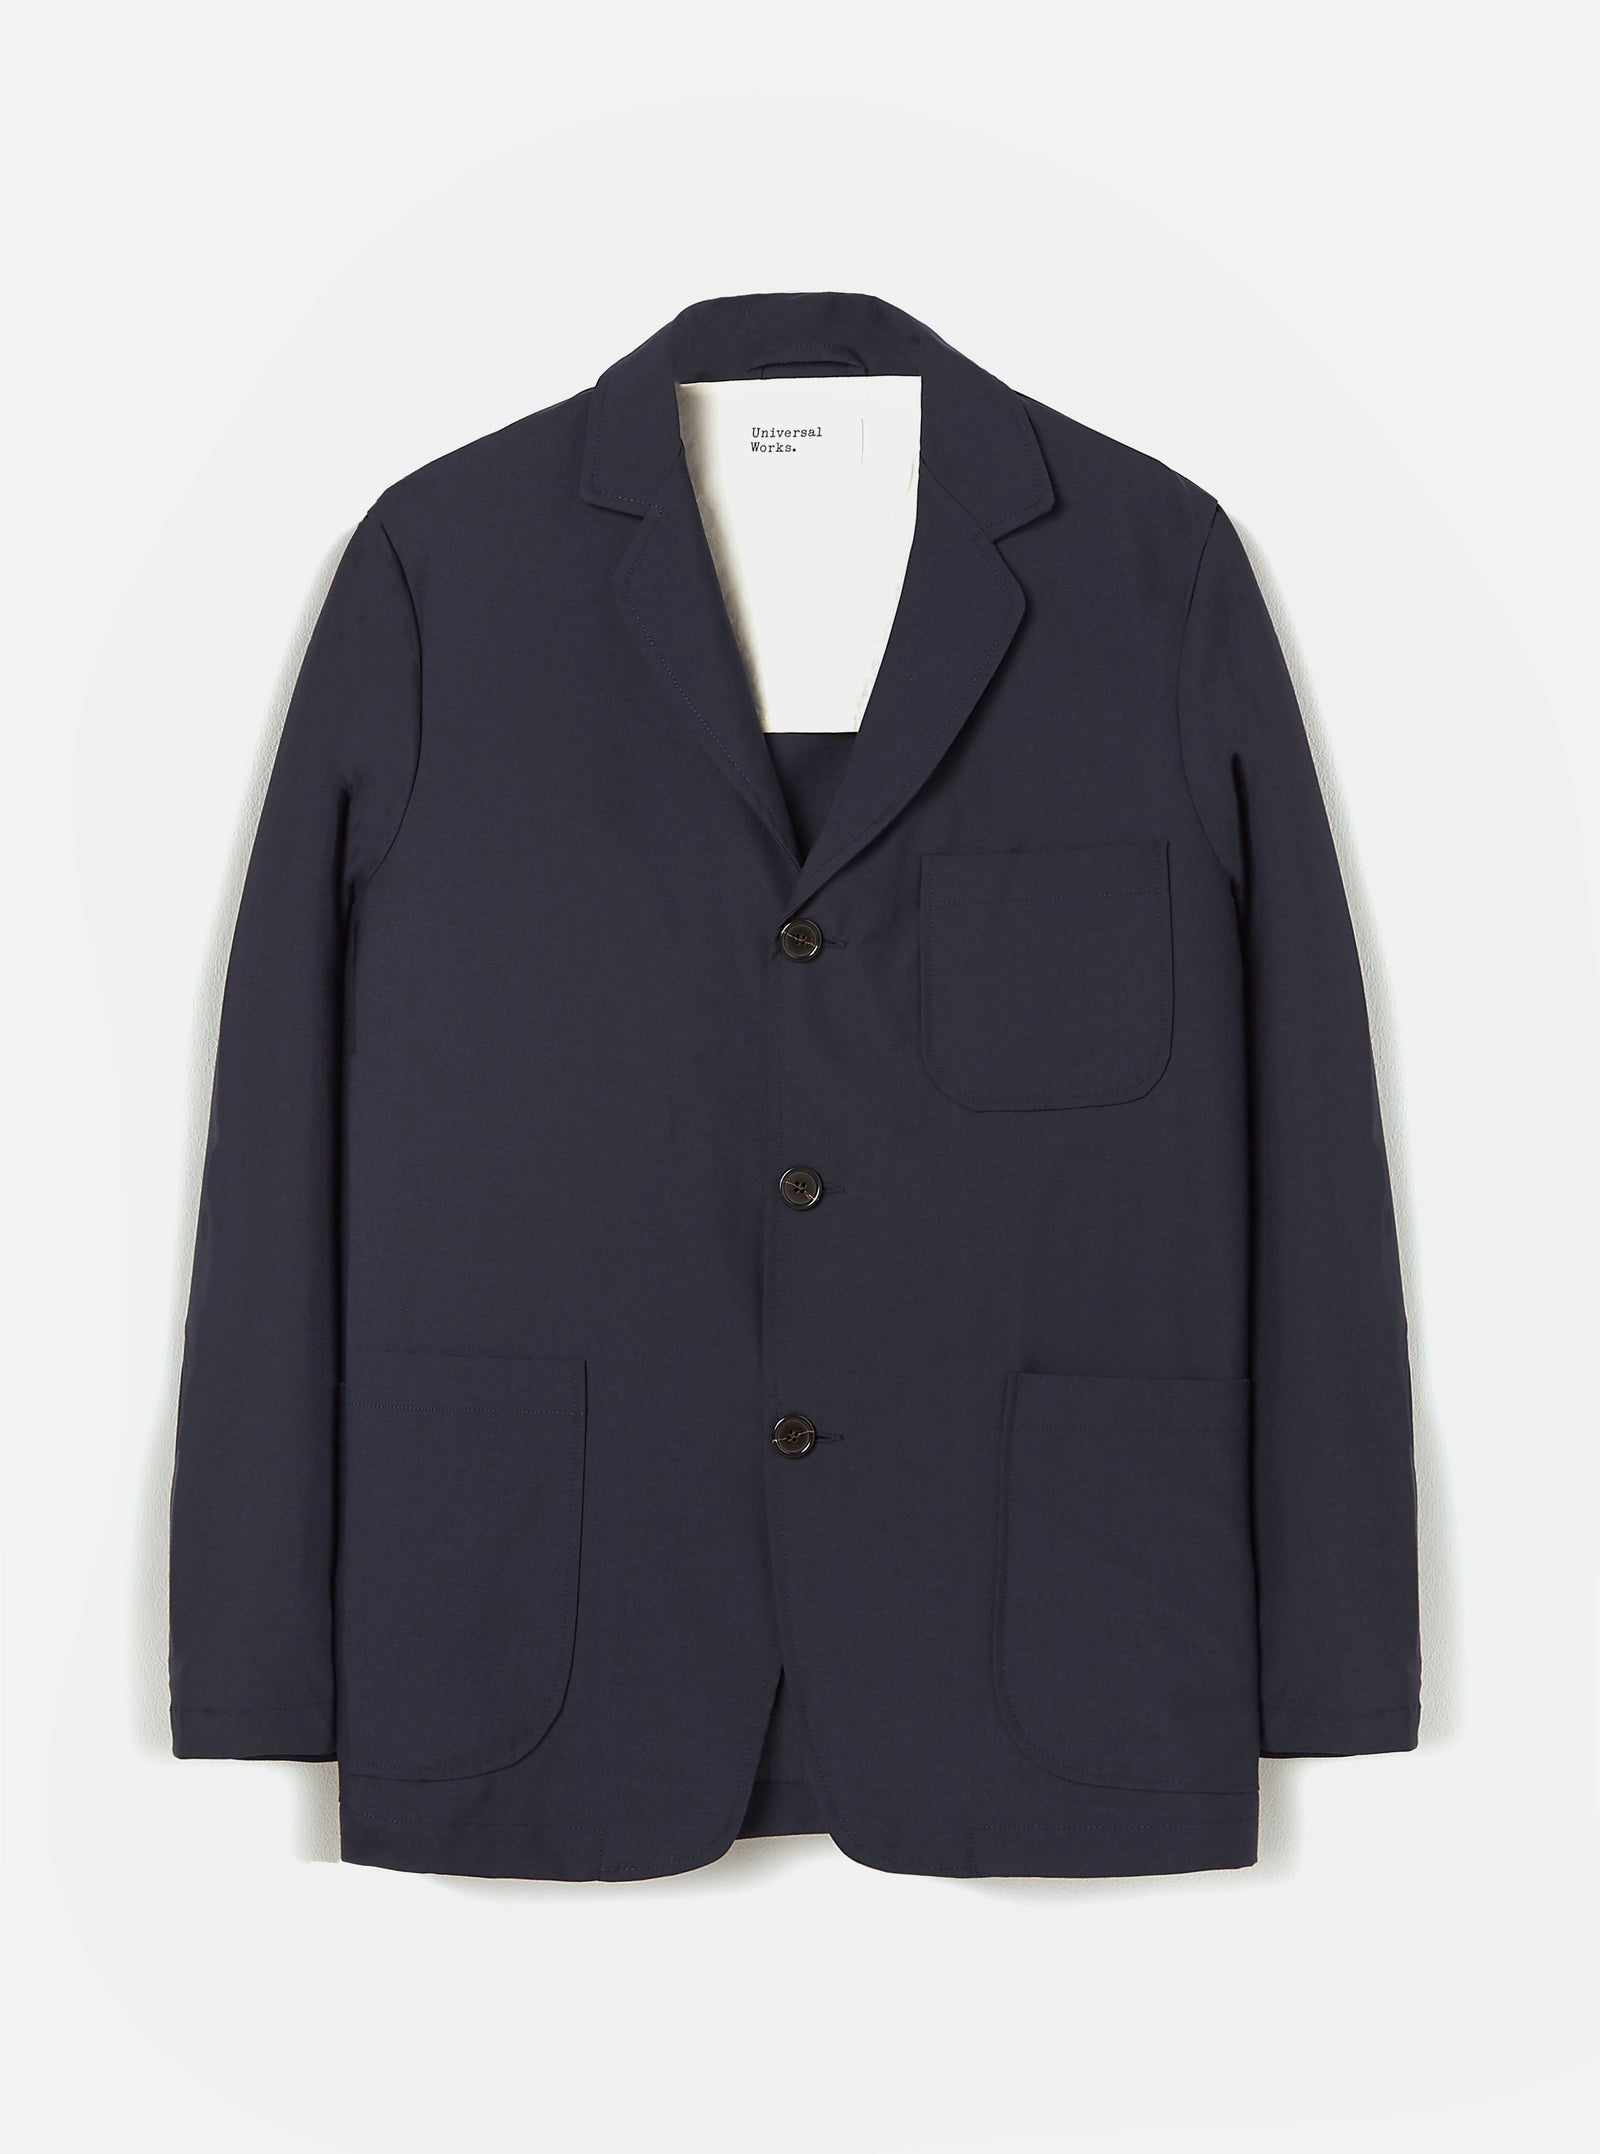 Universal Works Three Button Jacket in Navy Tropical Suiting